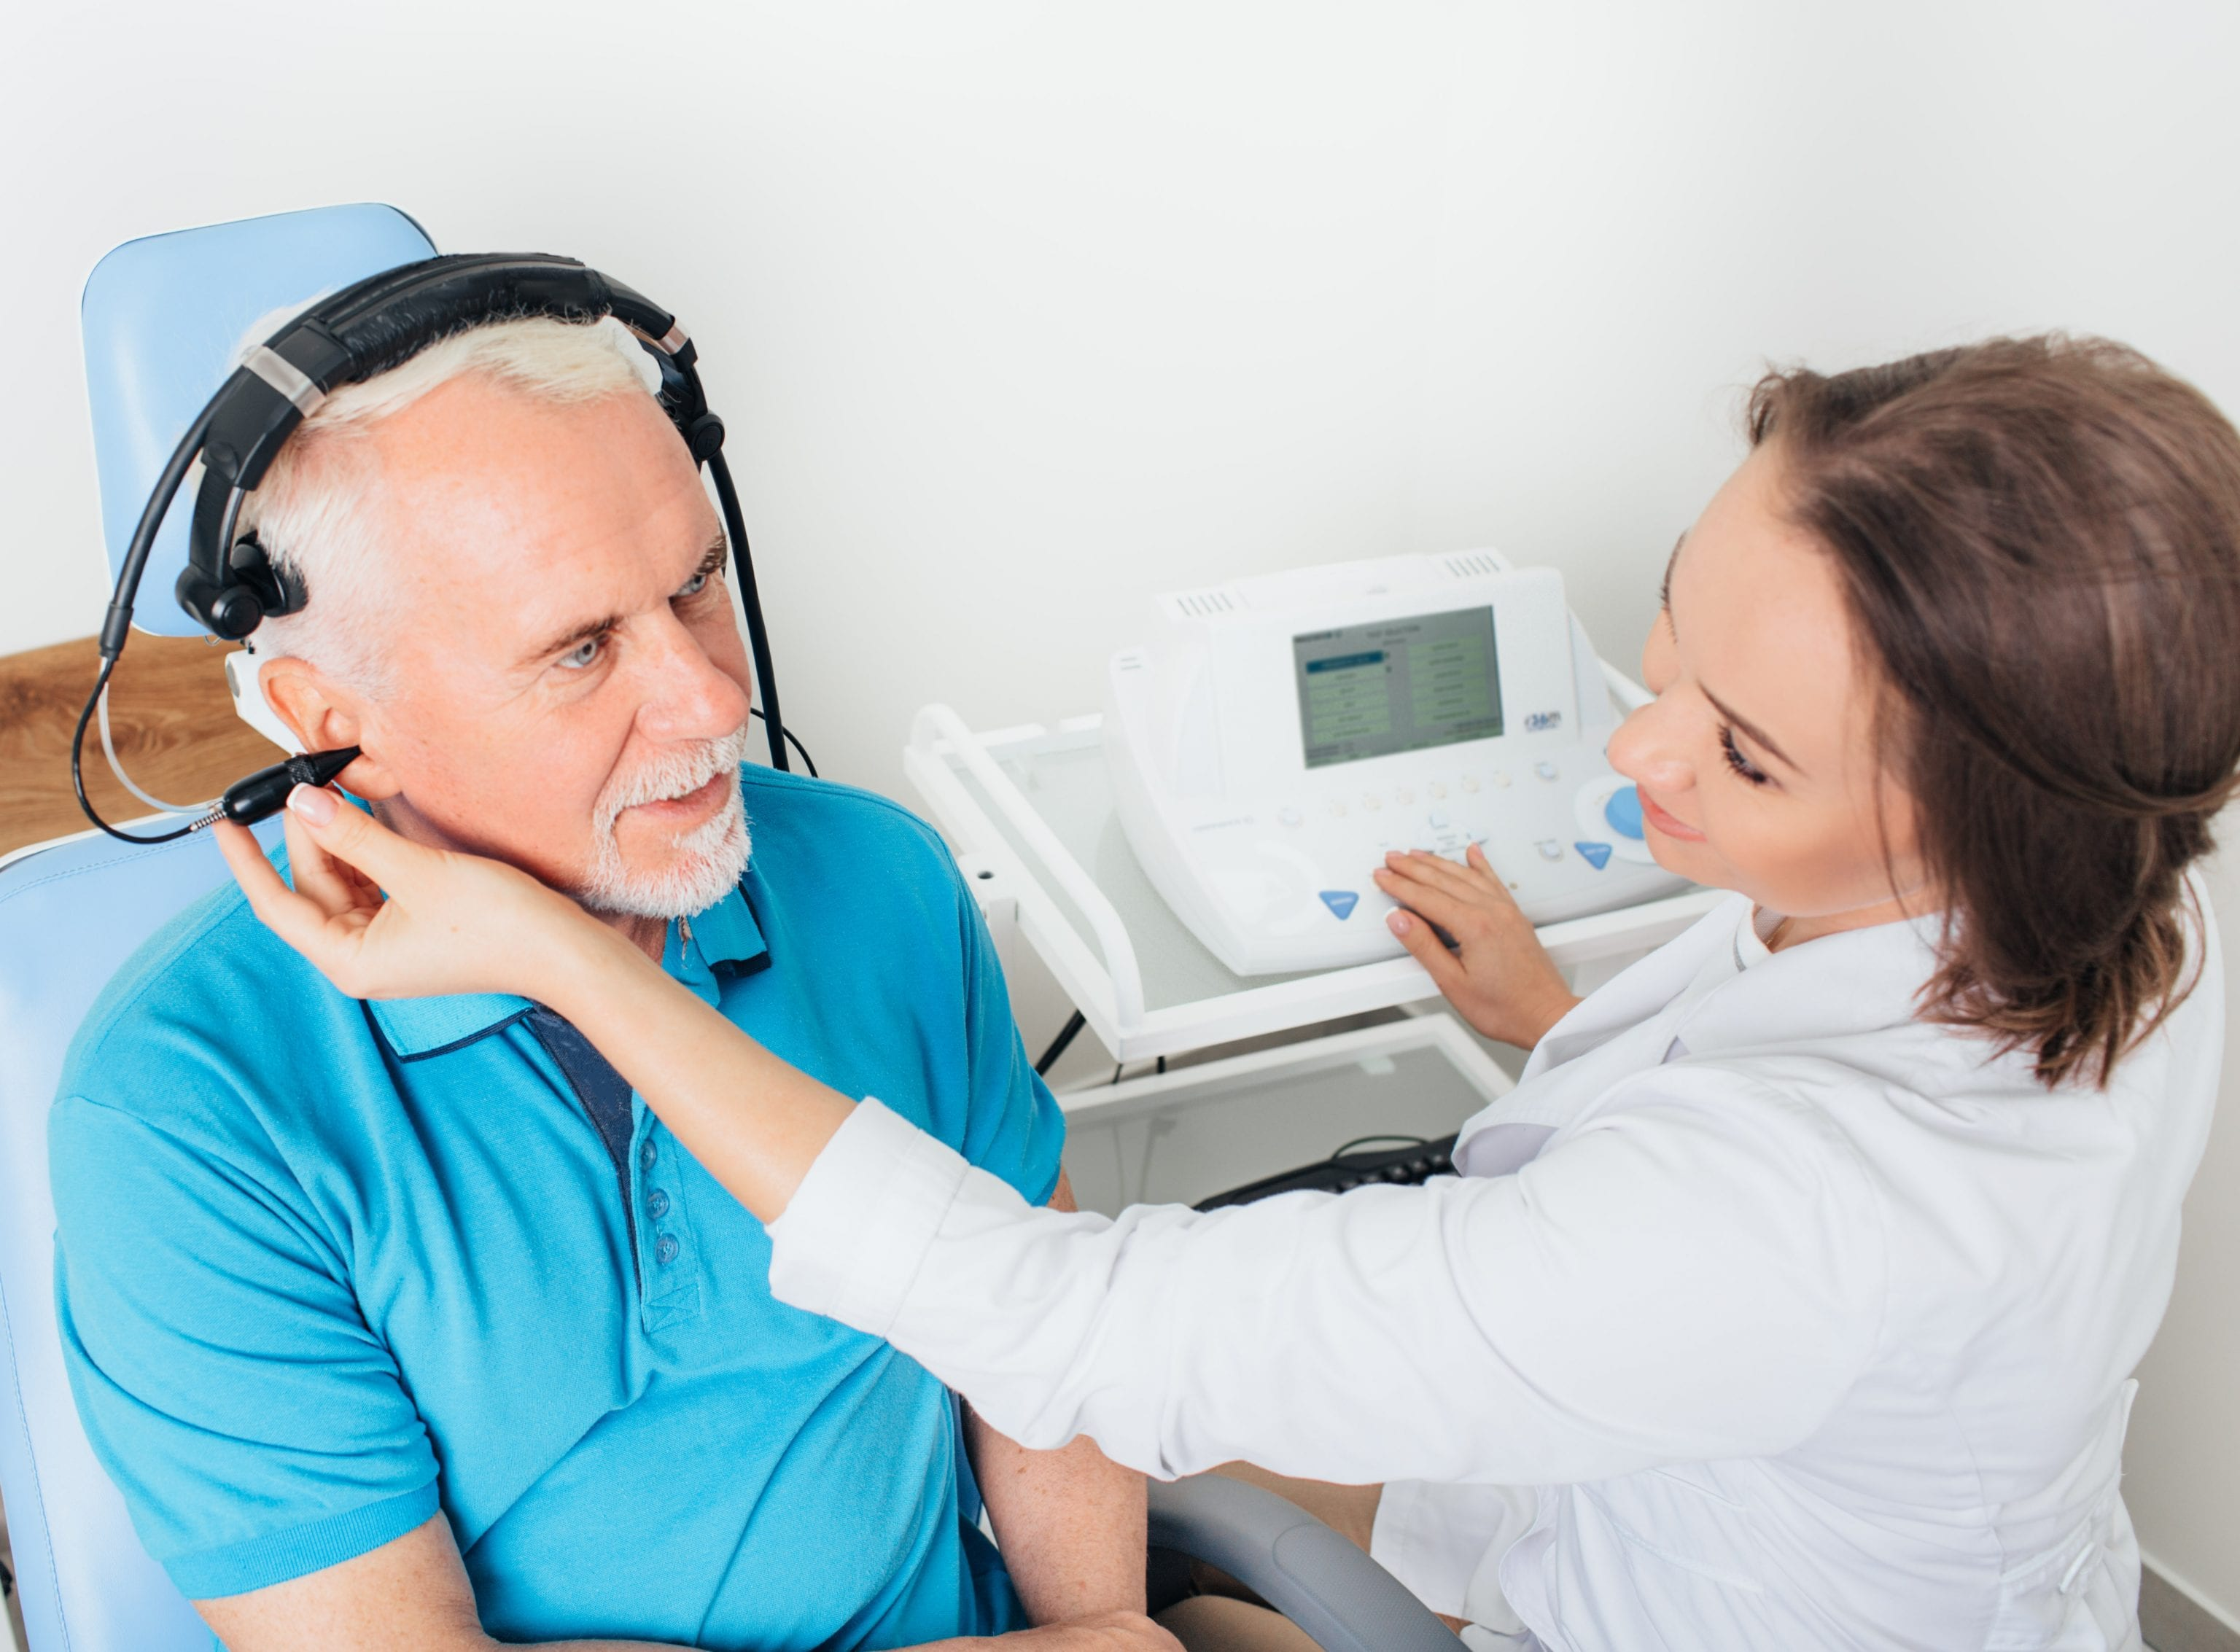 man wearing blue polo shirt having his hearing tested professionally by hearing specialist